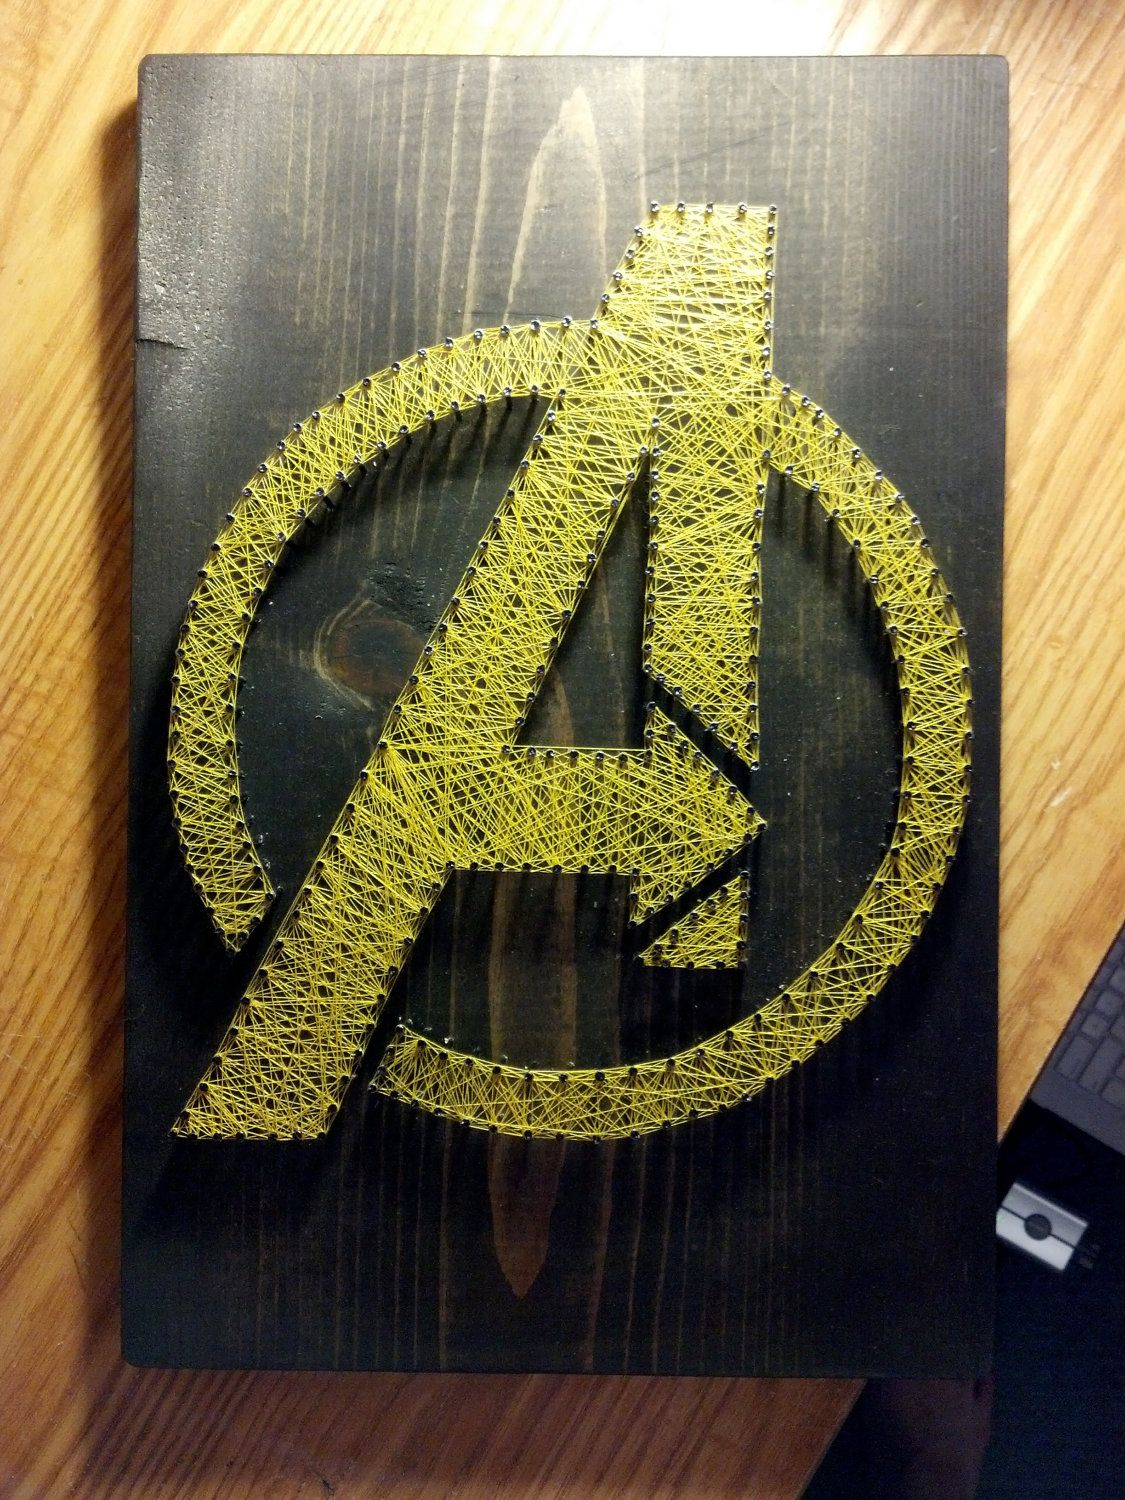 oooh... pretty | Marvel <3 | Pinterest | String art, Canvases and Marvel